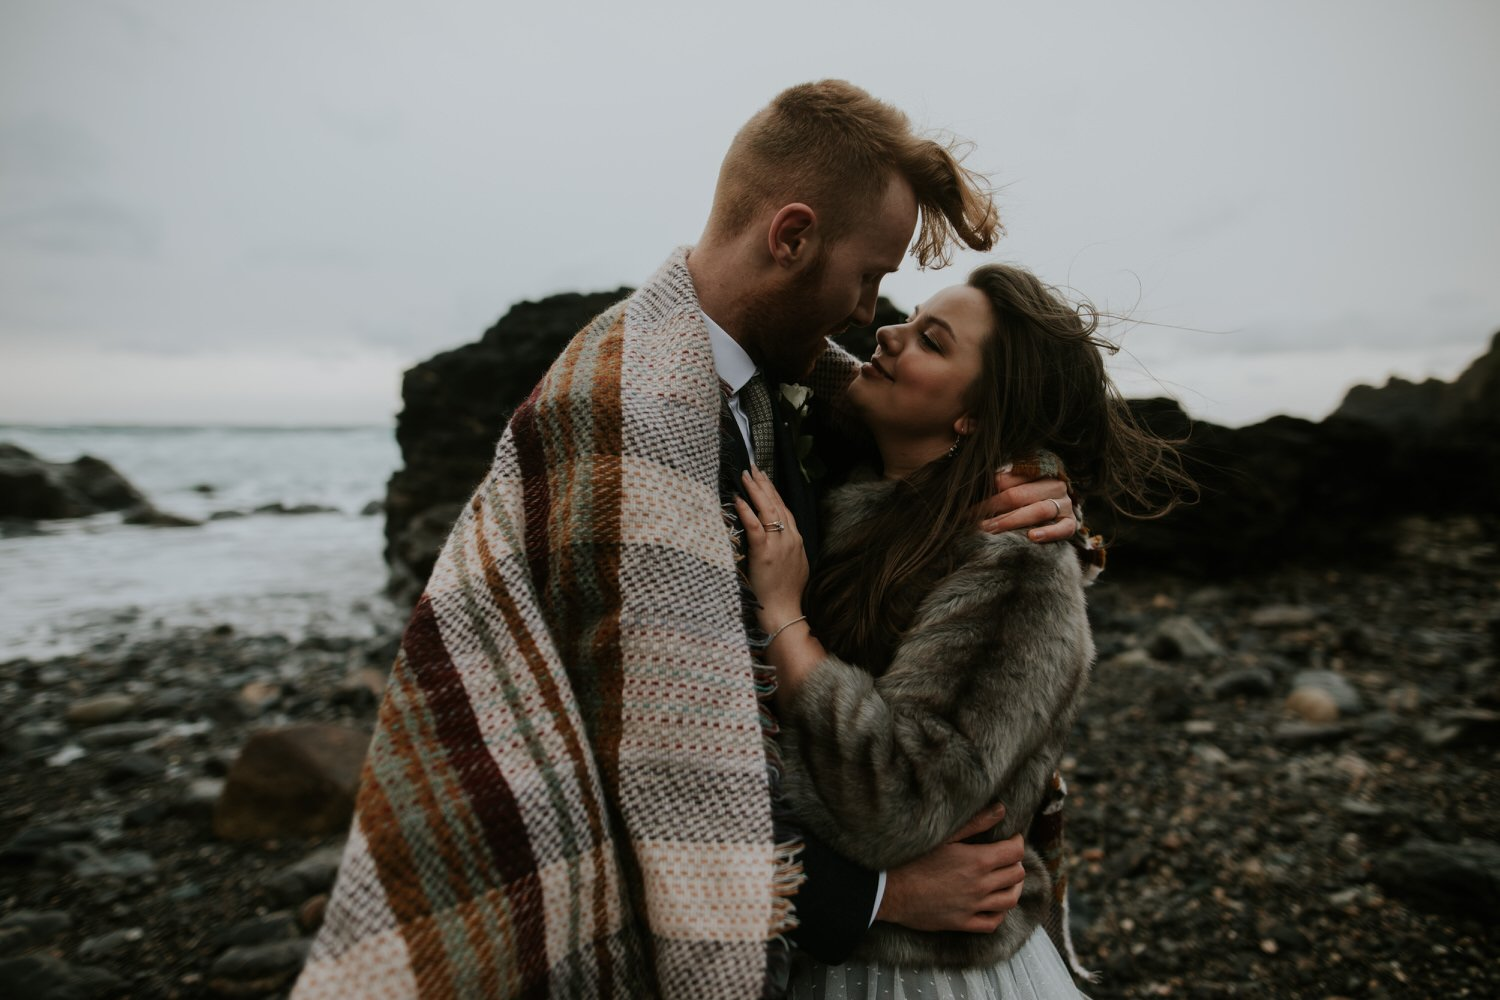 Outdoor Elopement in the UK with a beach Wedding Couple on their wedding day in Cornwall kissing on a beach